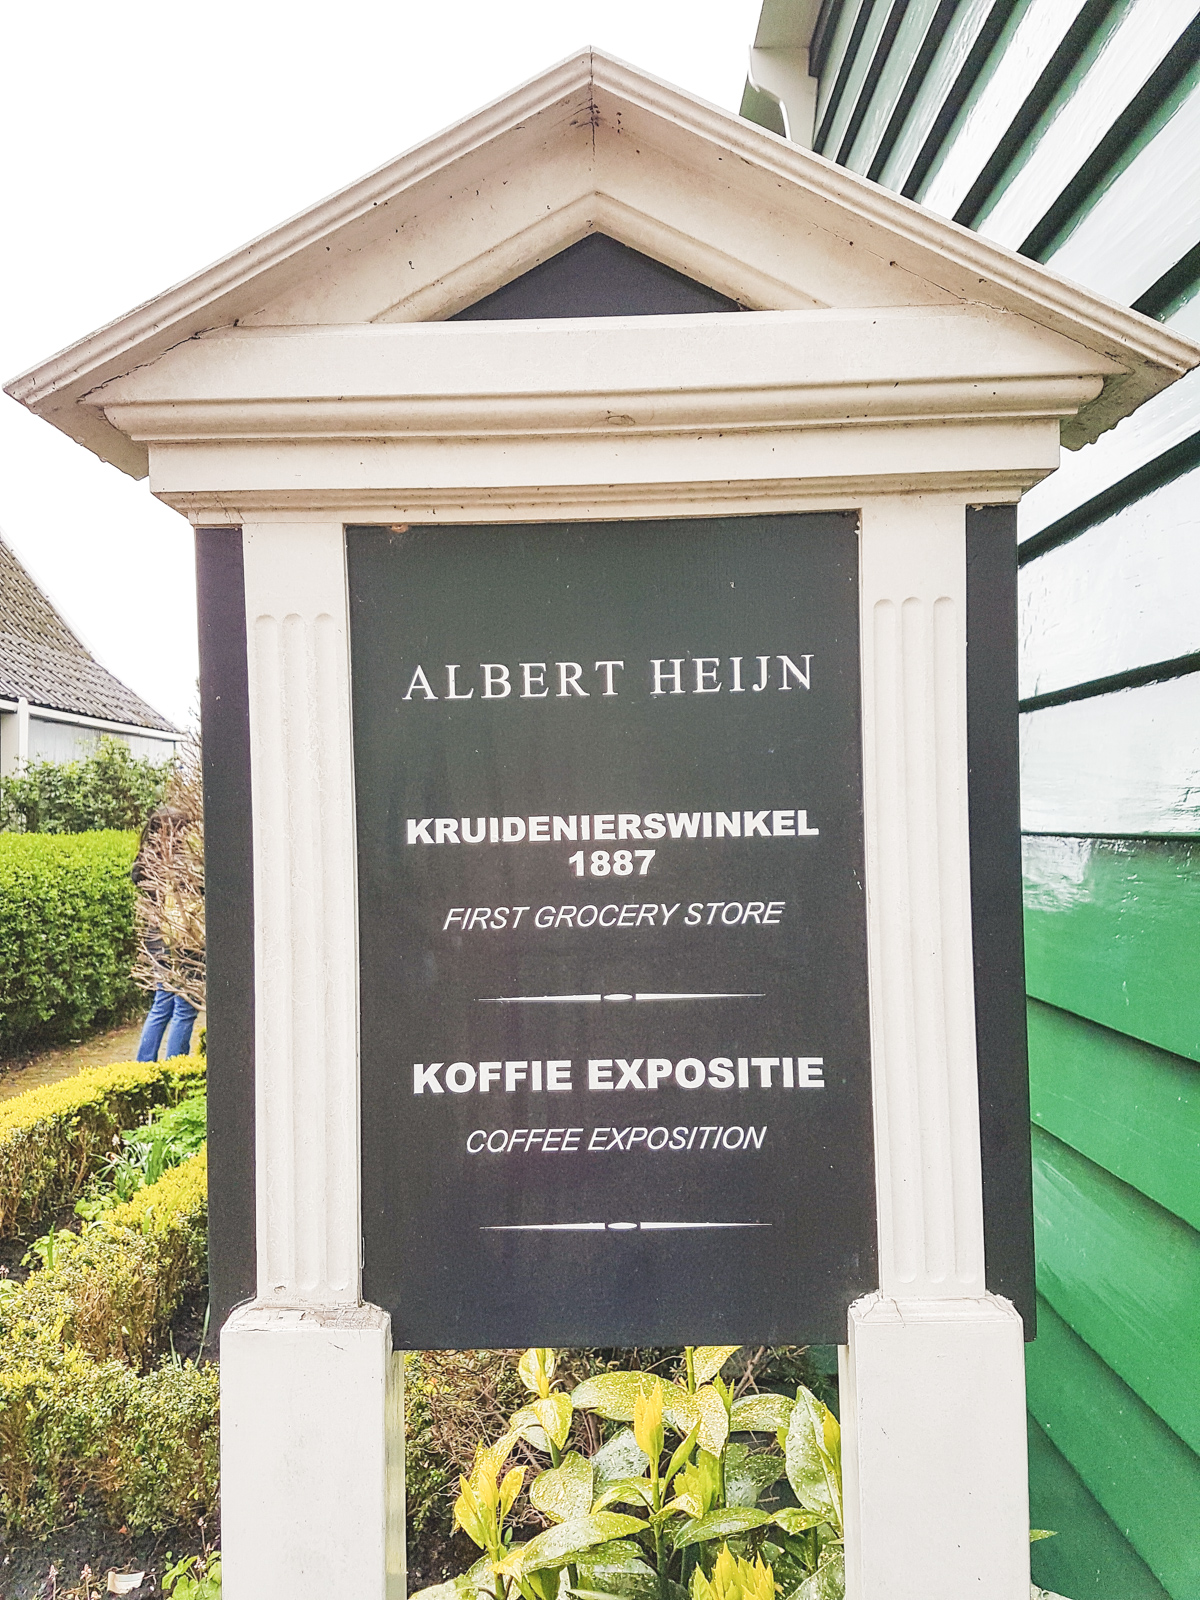 Albert Heijn at Zaanse Schans, Holland, The Netherlands